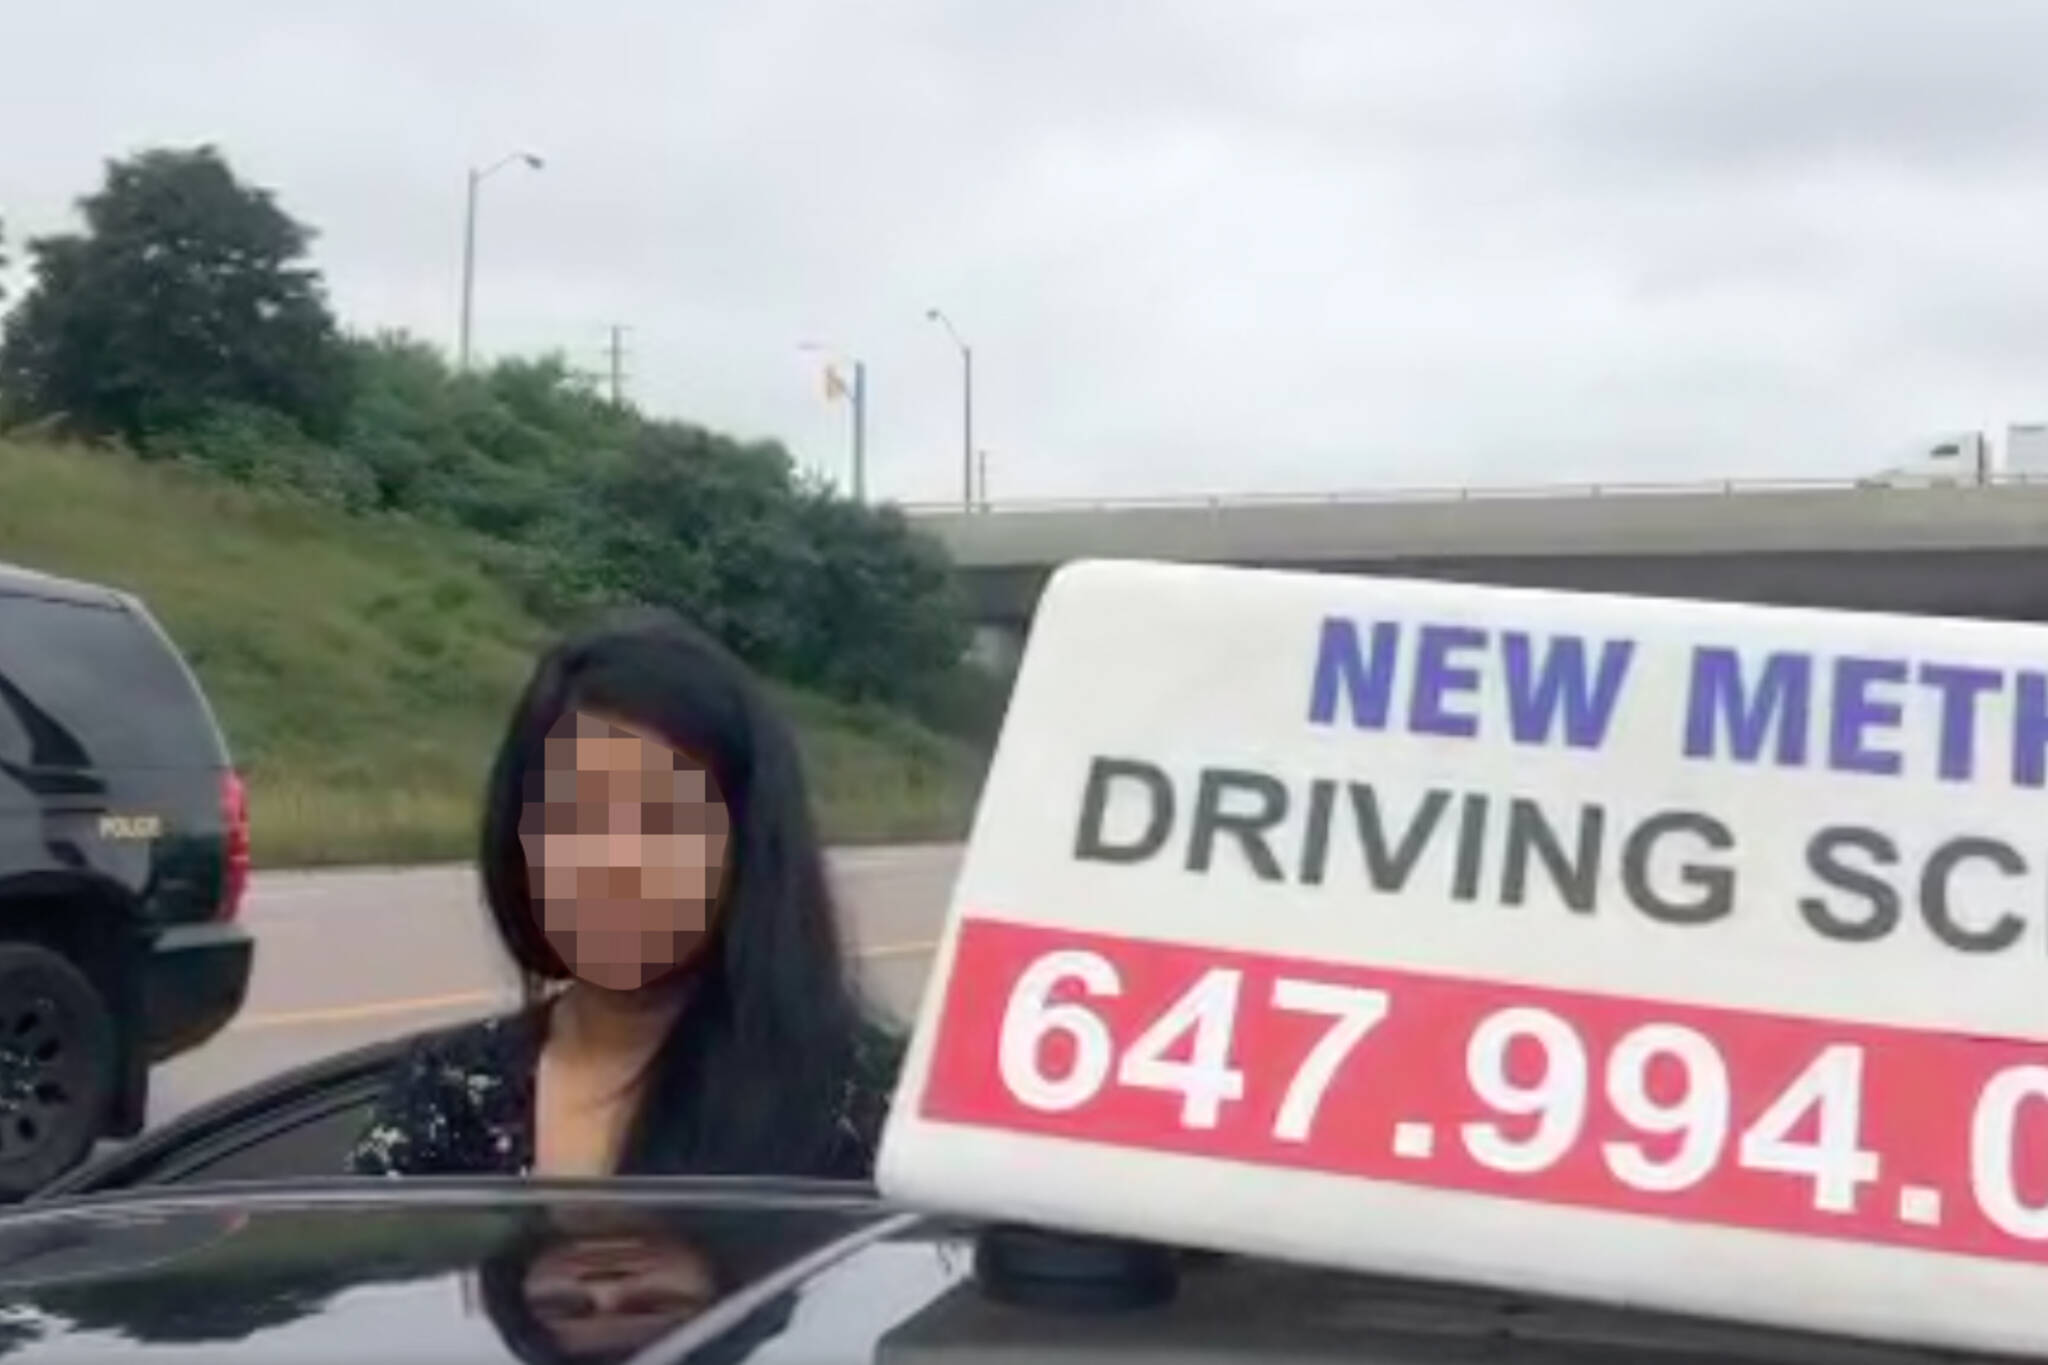 brampton driving school